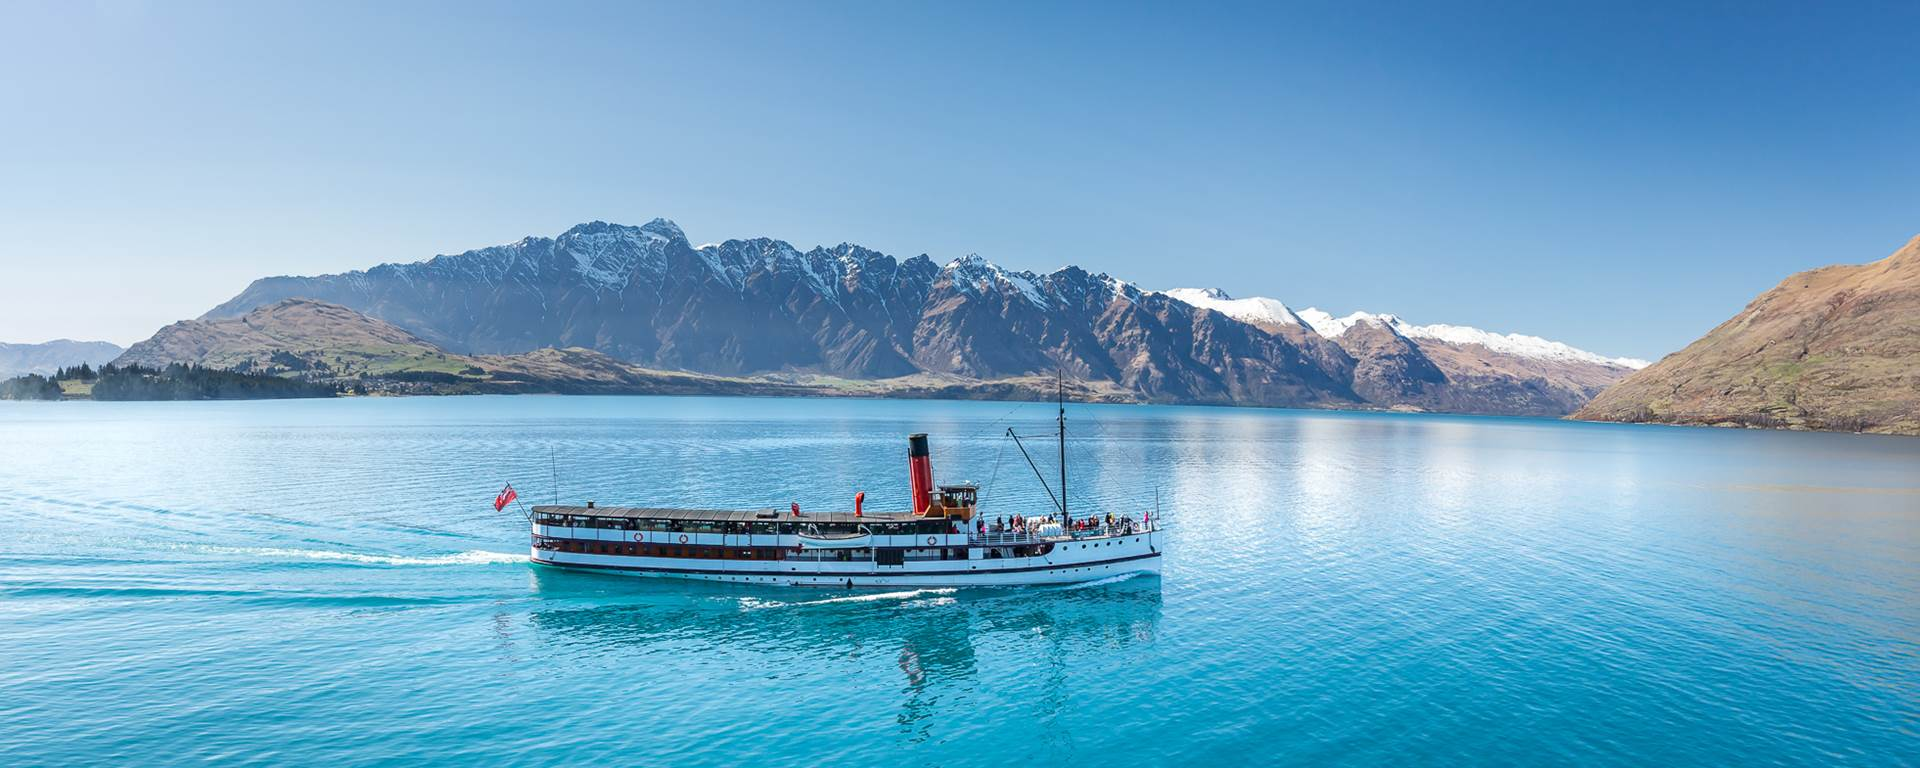 The TSS Earnslaw cruises across Lake Wakatipu with Remarkables in the background